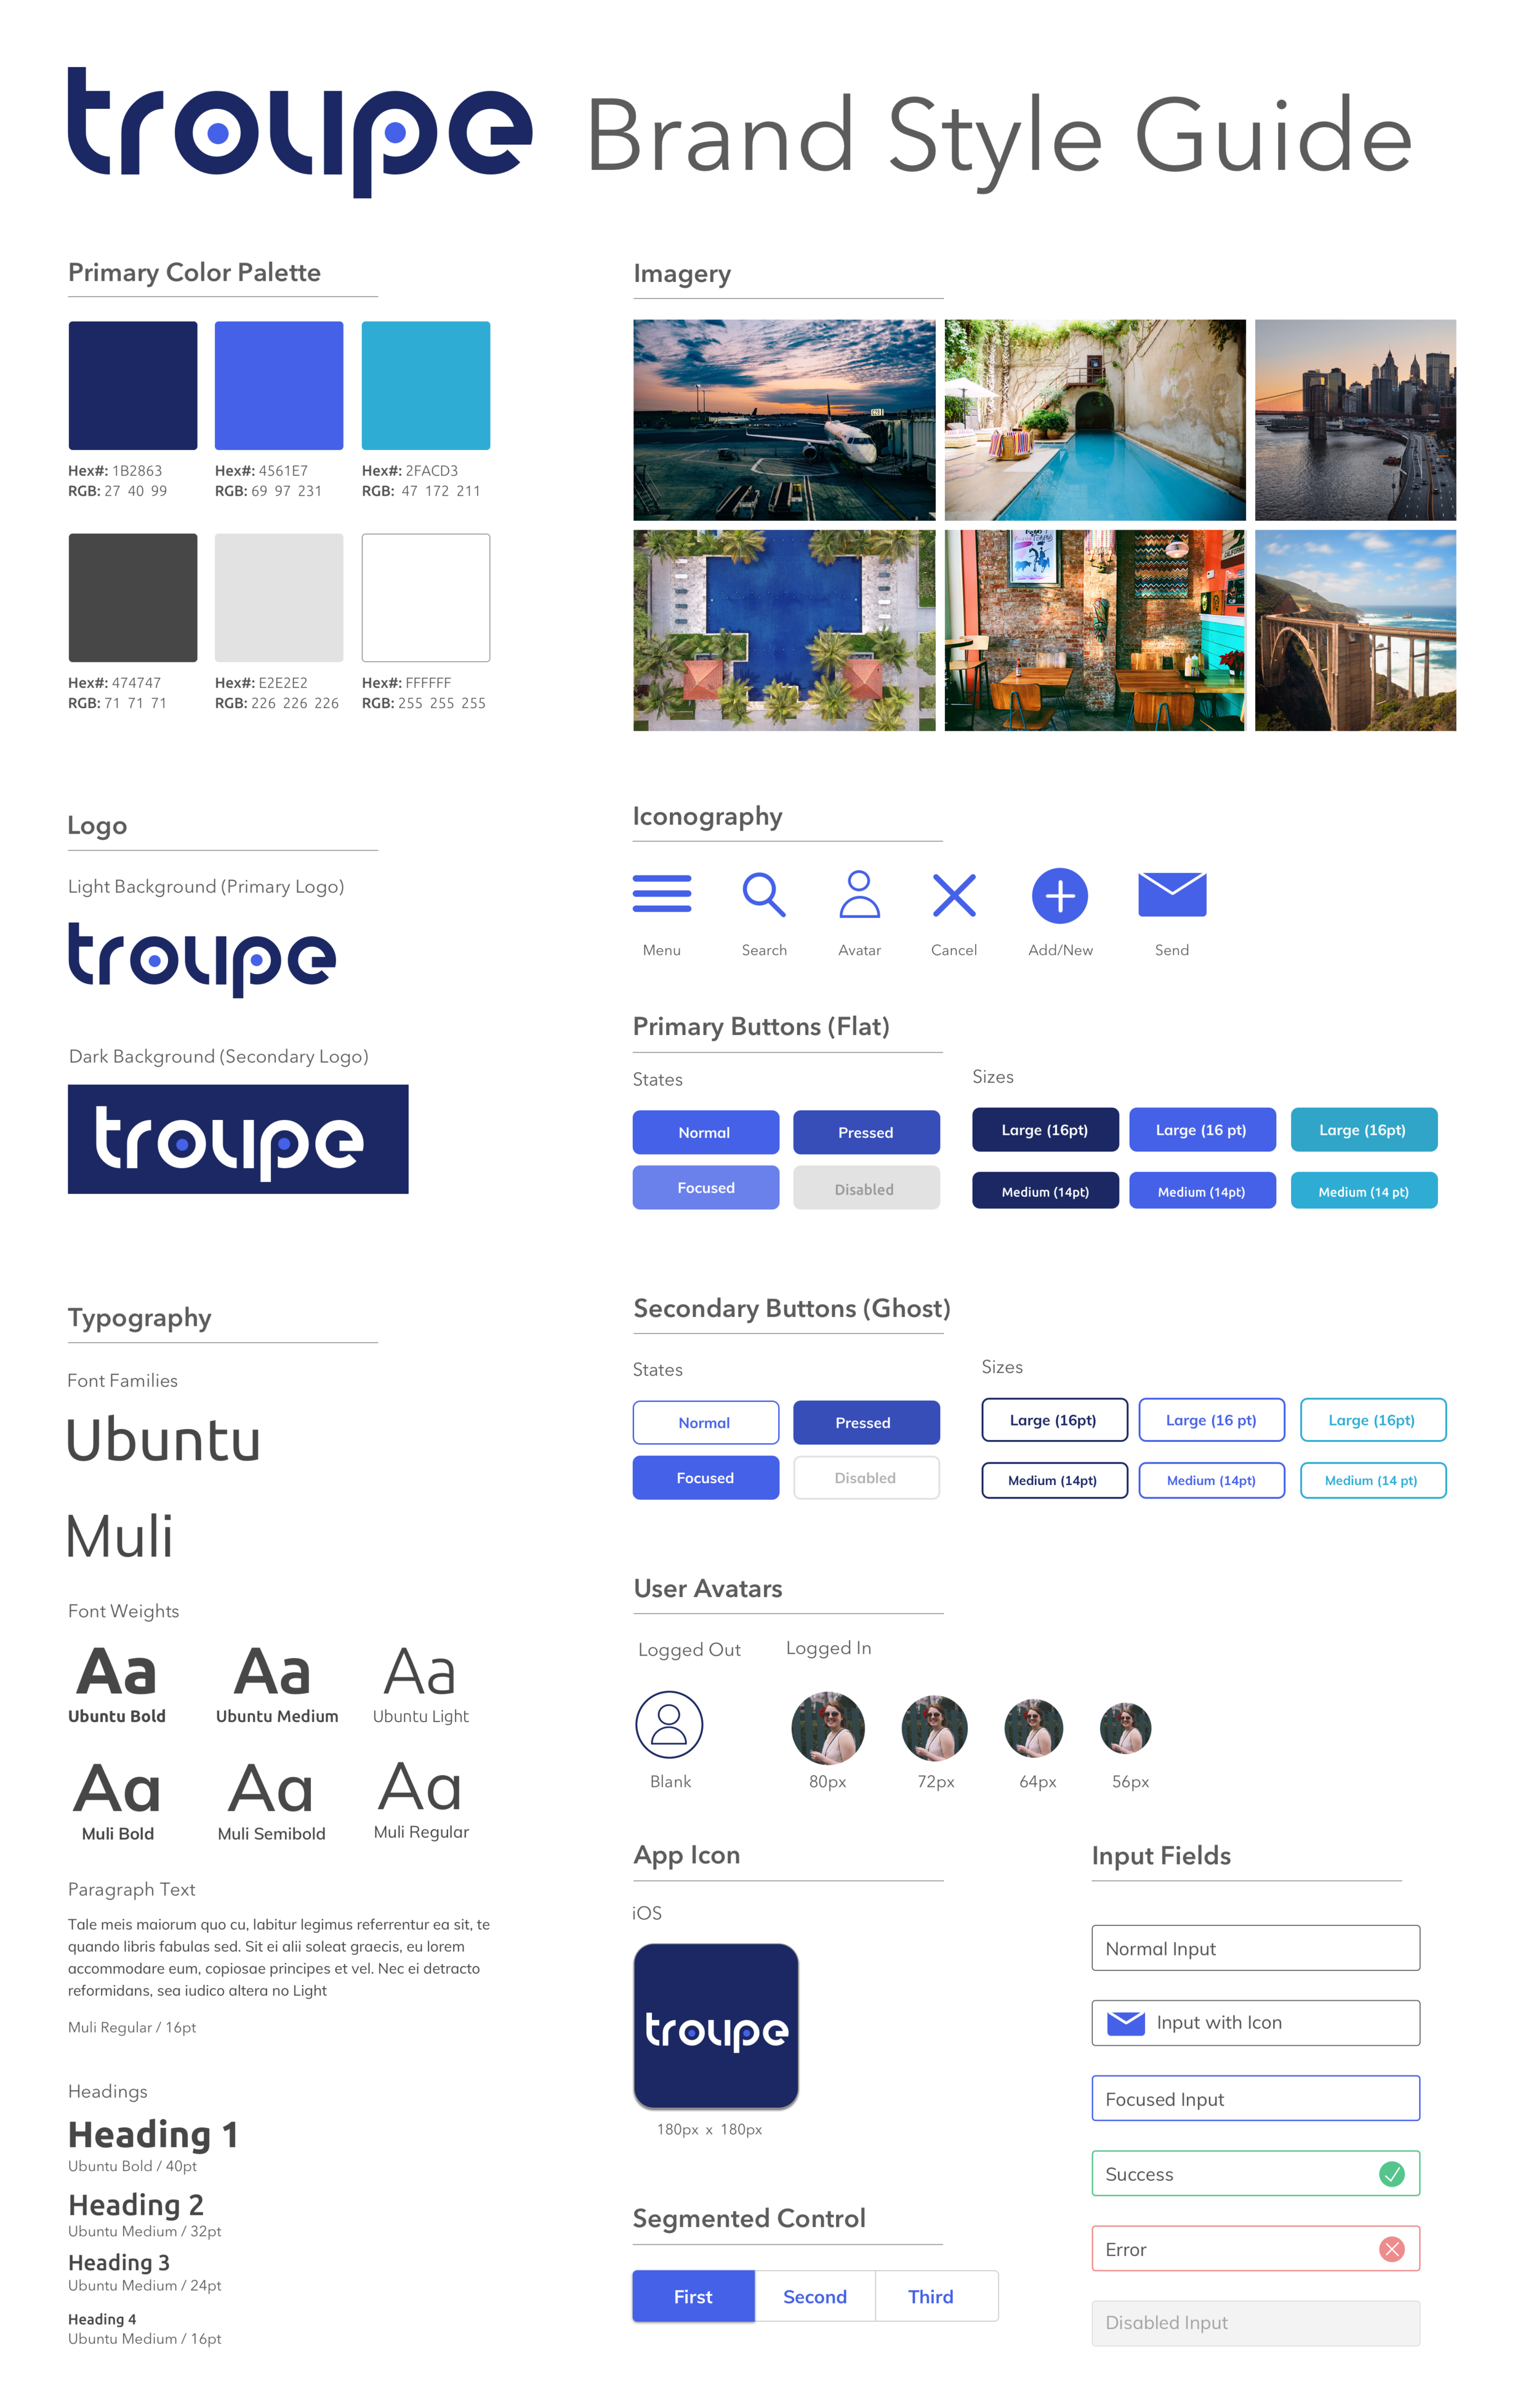 Style Guide for the Troupe brand, including some key UI elements